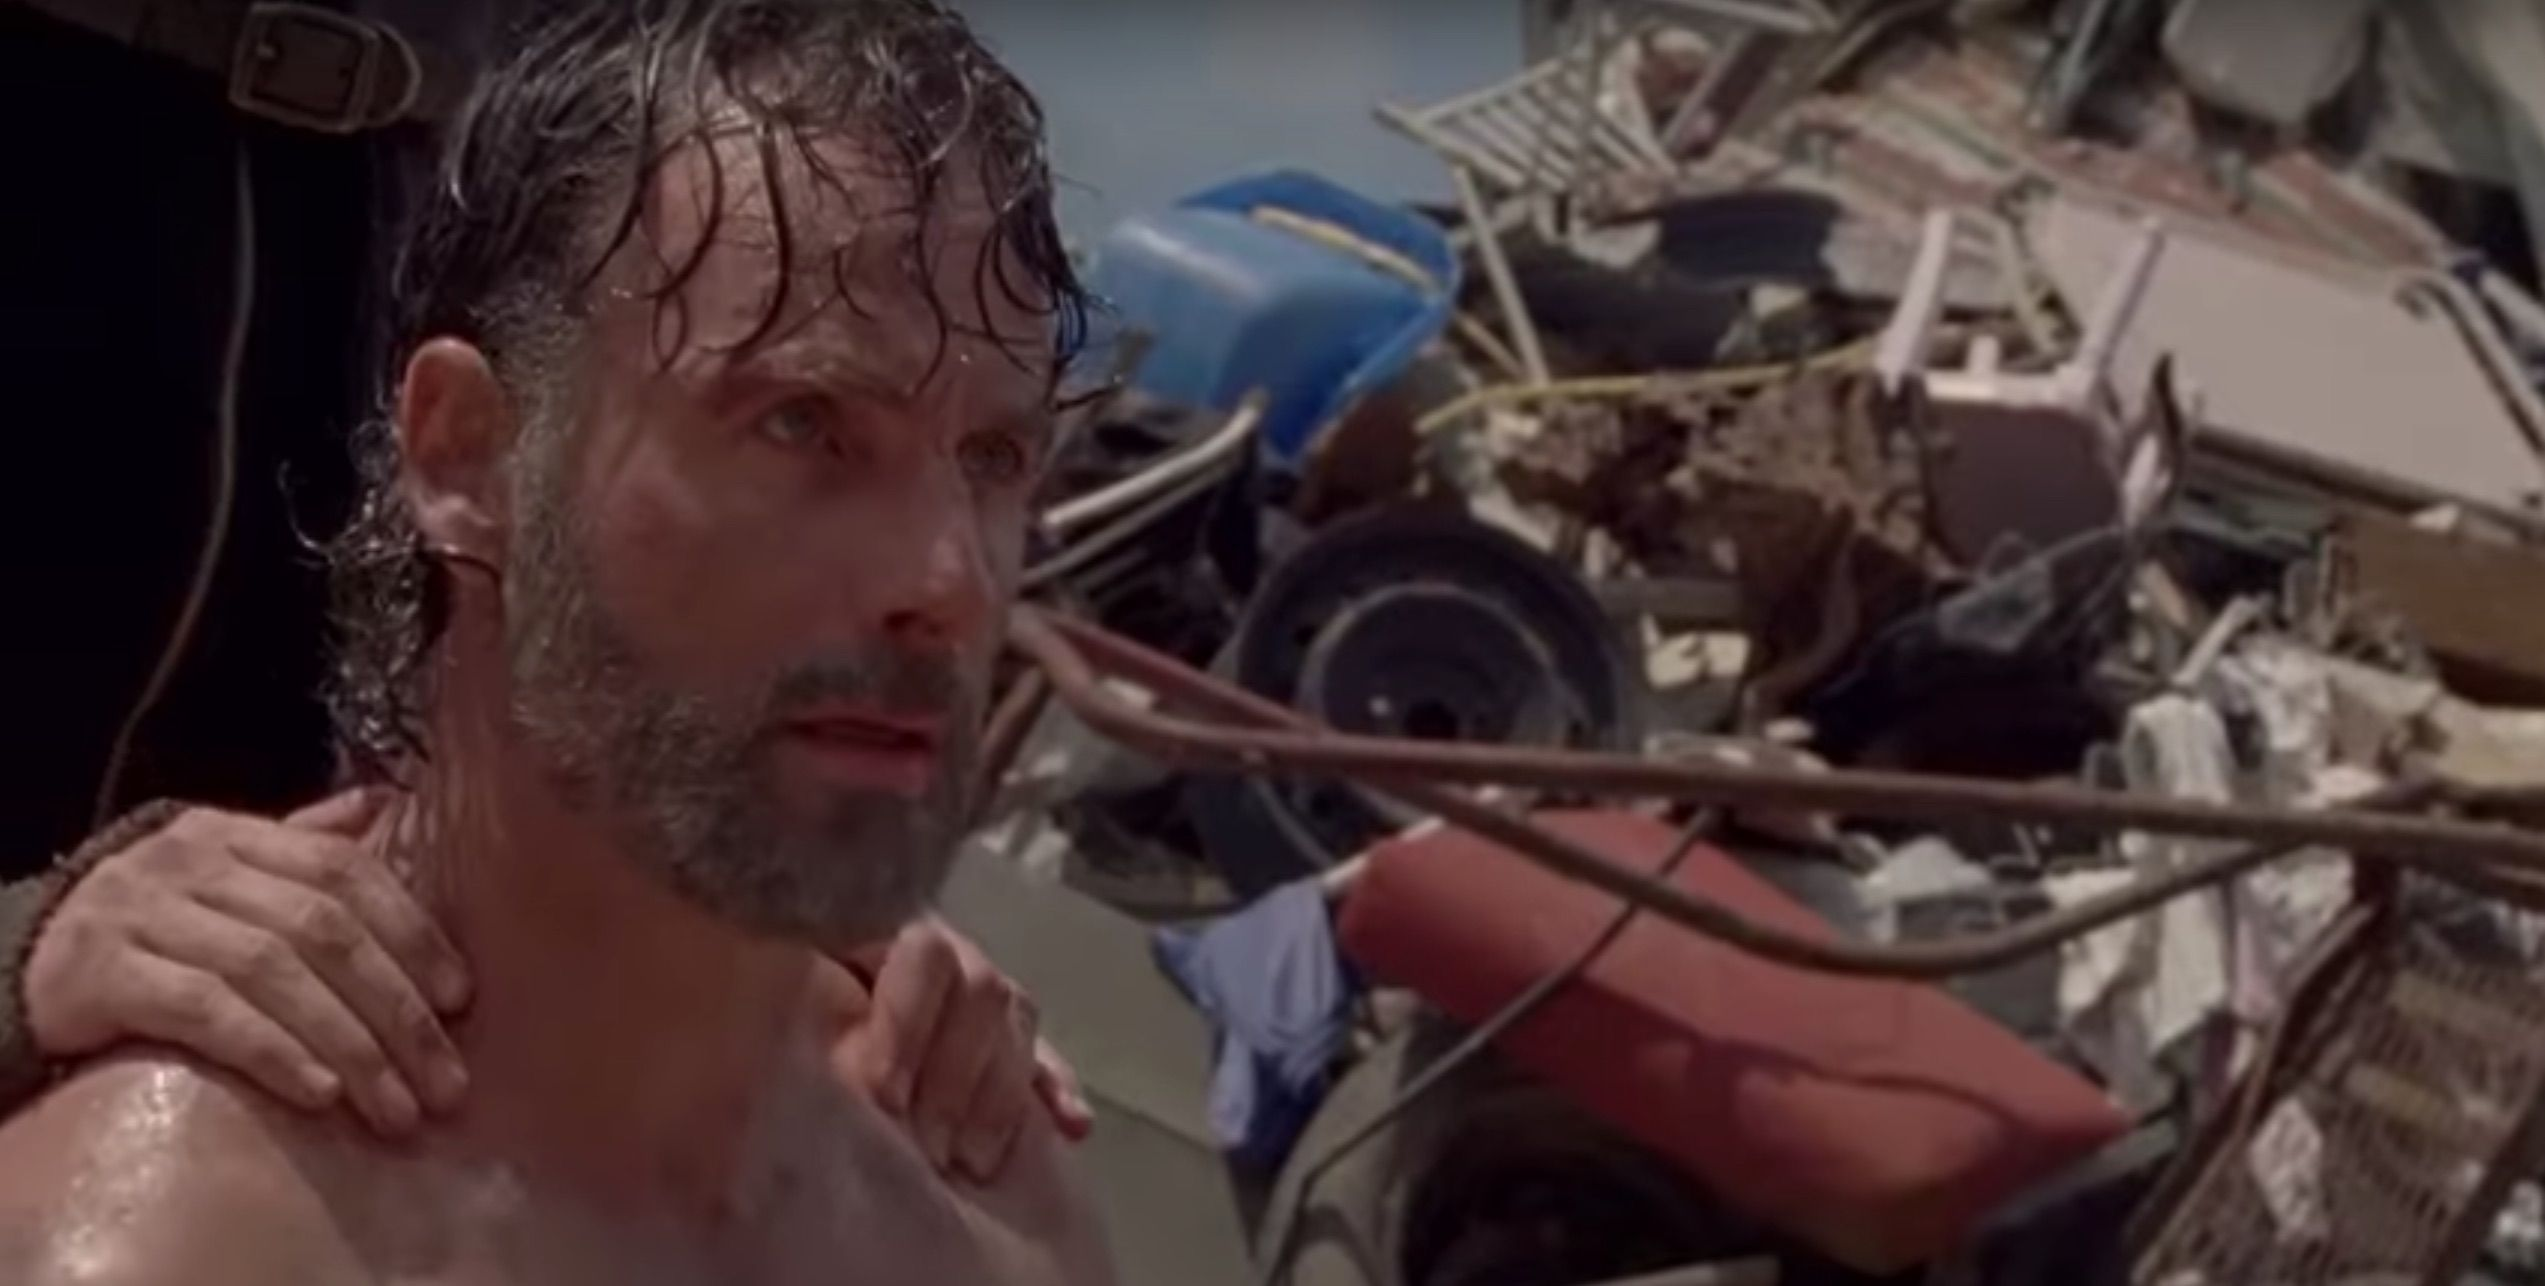 Nude andrew lincoln Hot Andrew